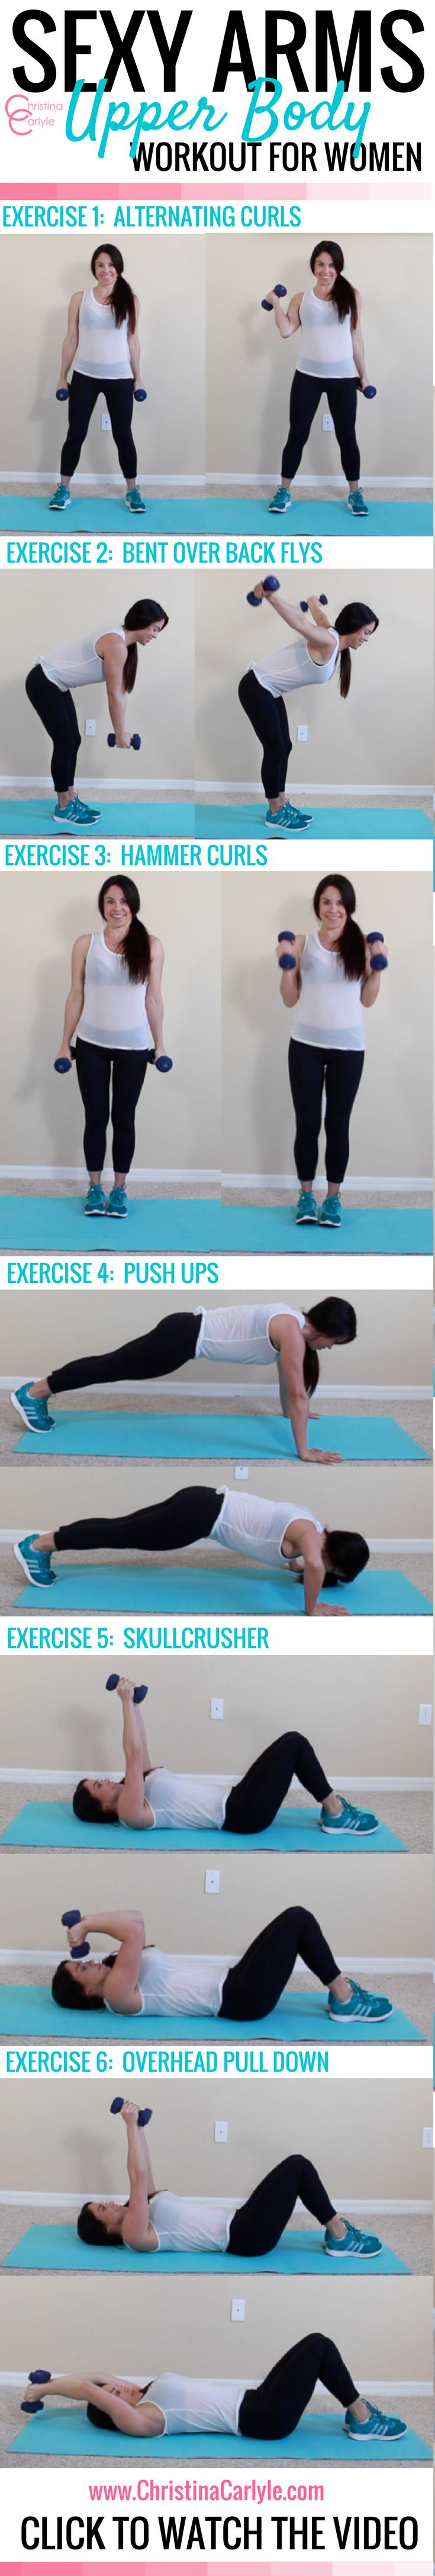 These are some of the best arm exercises for women.  They help train all of the muscles in the arms without building a lot of bulk.  #workout #fitness